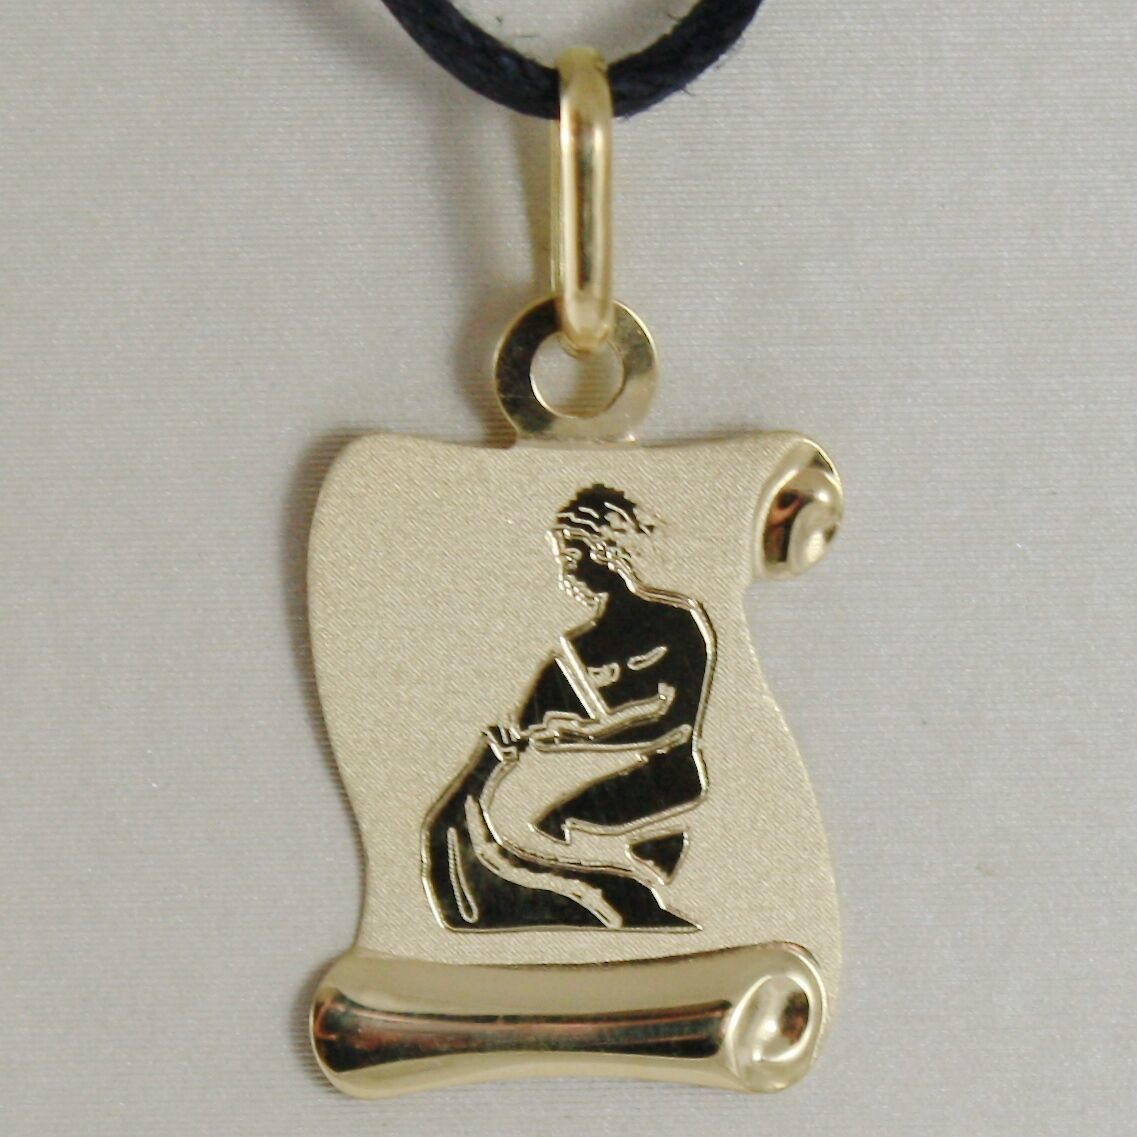 18K YELLOW GOLD ZODIAC SIGN MEDAL AQUARIUS PARCHMENT ENGRAVABLE MADE IN ITALY